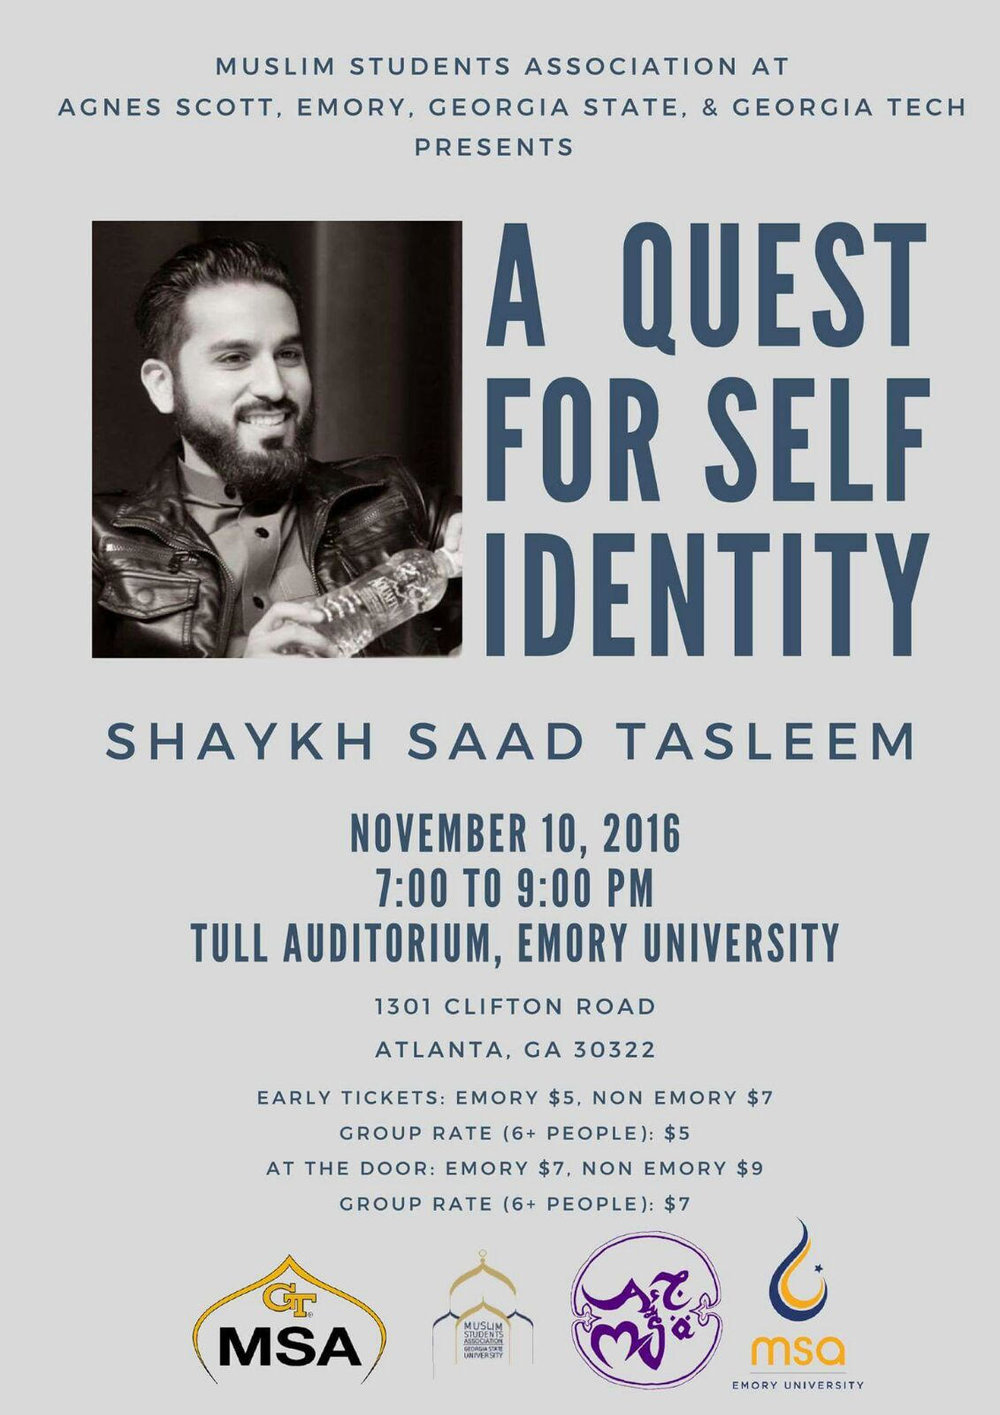 "Muslim Student Association At Anges Scott, Emory, Georgia State, and Georgia Tech Present ""A Quest For Self Identity"" by Shaykh Saad Tasleem. Please join us on November 10th, 7pm-9pm at Tull Auditorium,Emory University ( 1301 Clifton Road, Atlanta Ga 30322). See you there !"